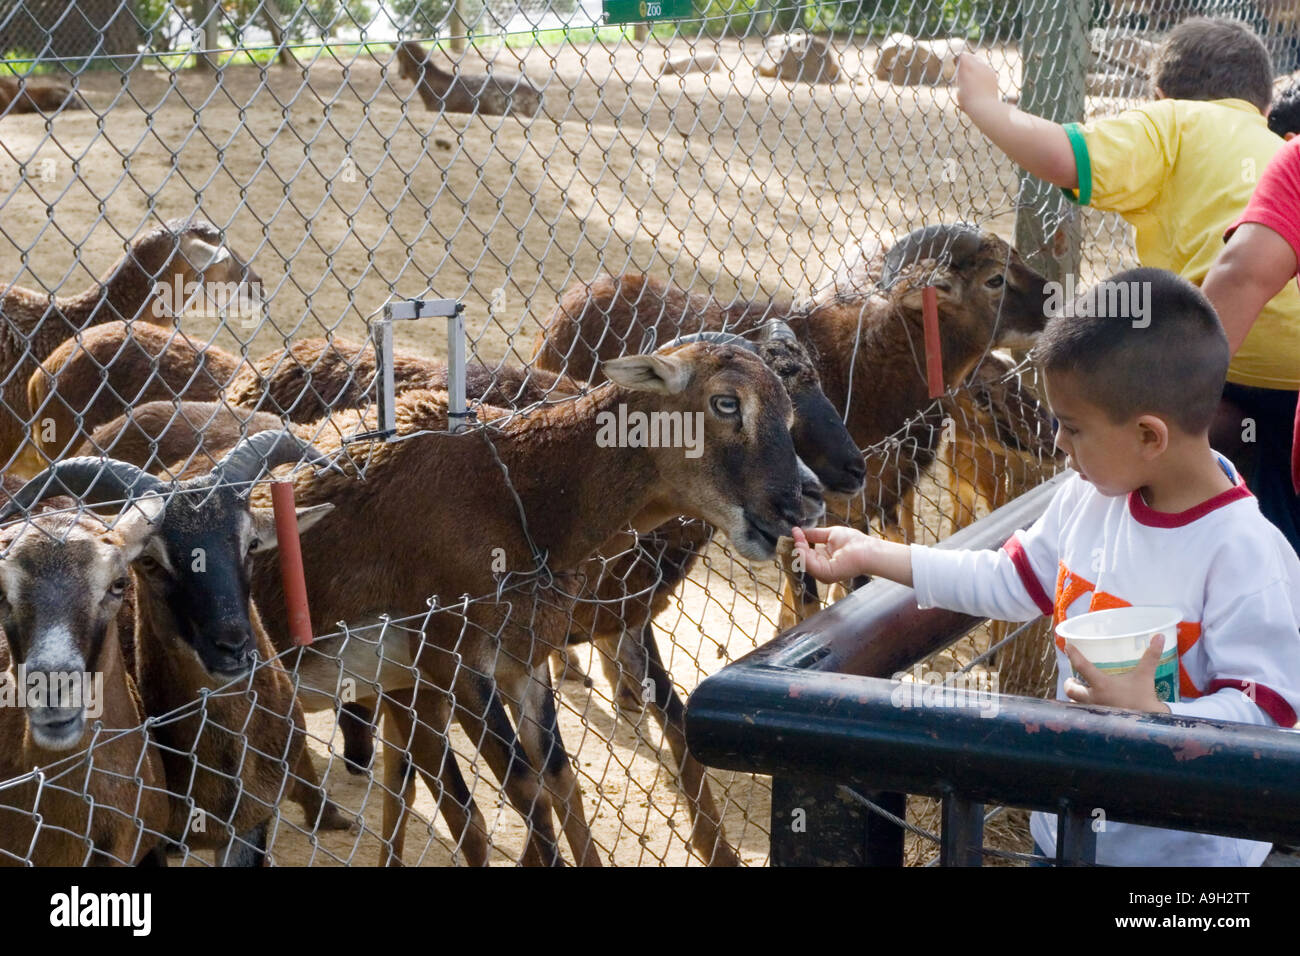 A young boy feeding goats at the Zoo Stock Photo